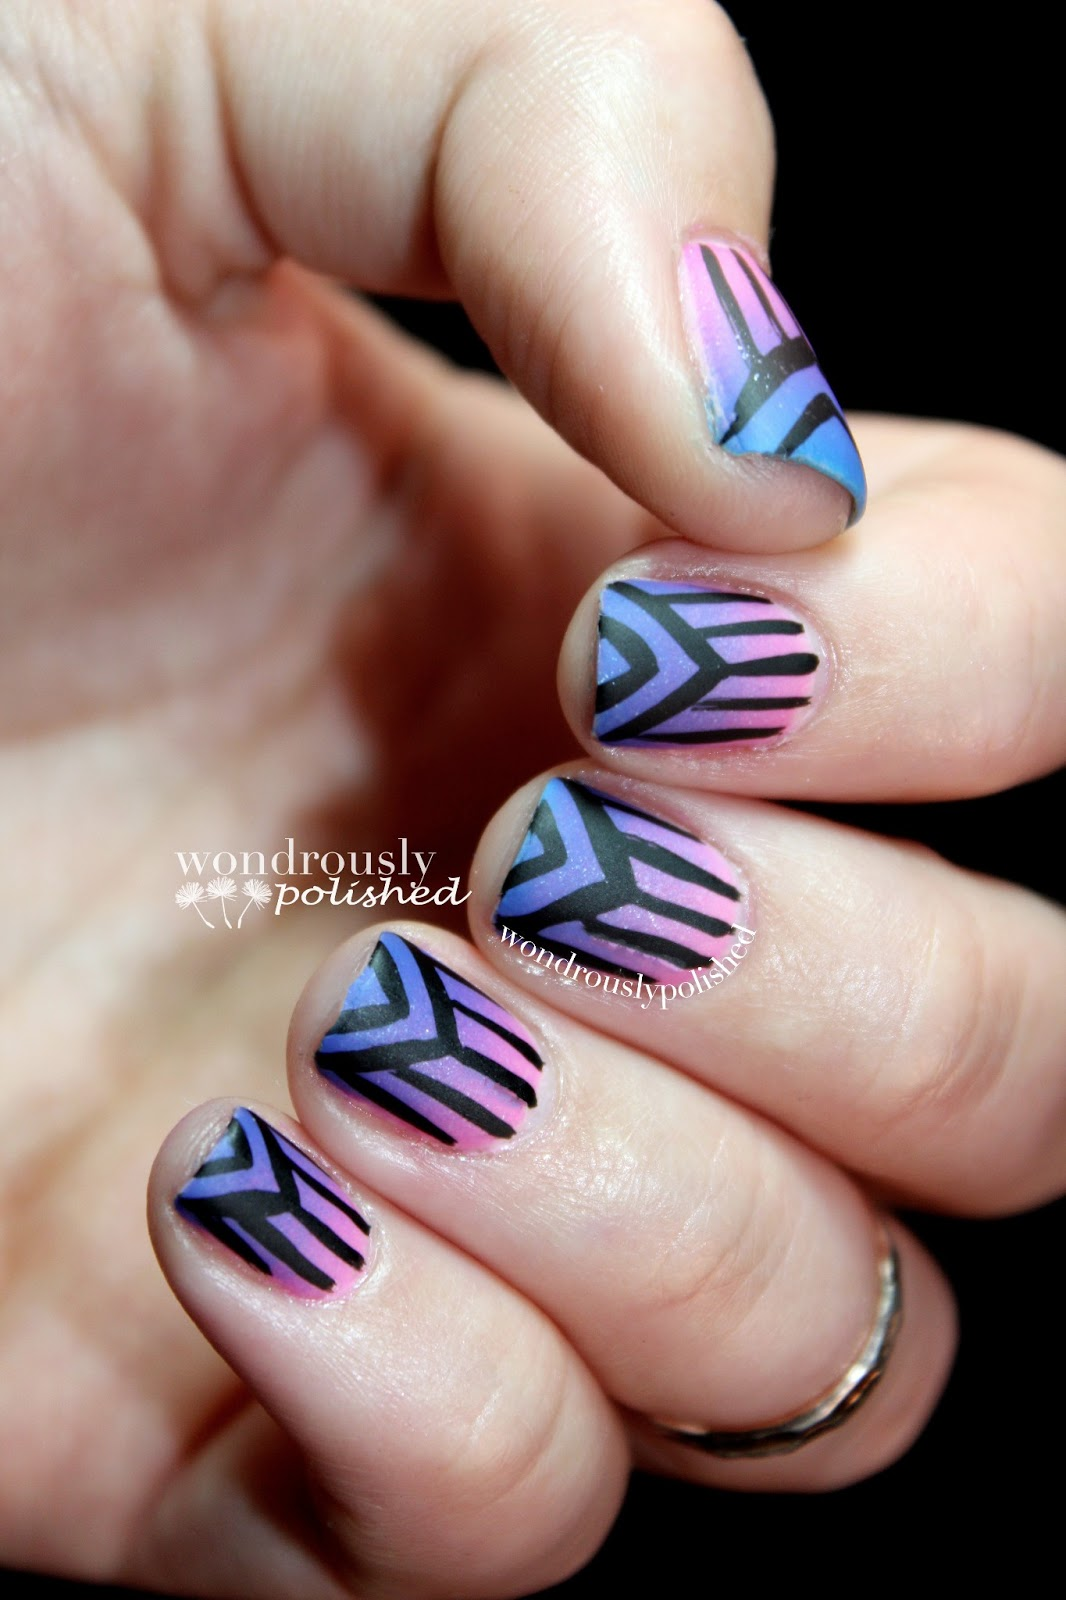 Wondrously Polished February Nail Art Challenge: Wondrously Polished: Gradient And Some Free Hand Stripes